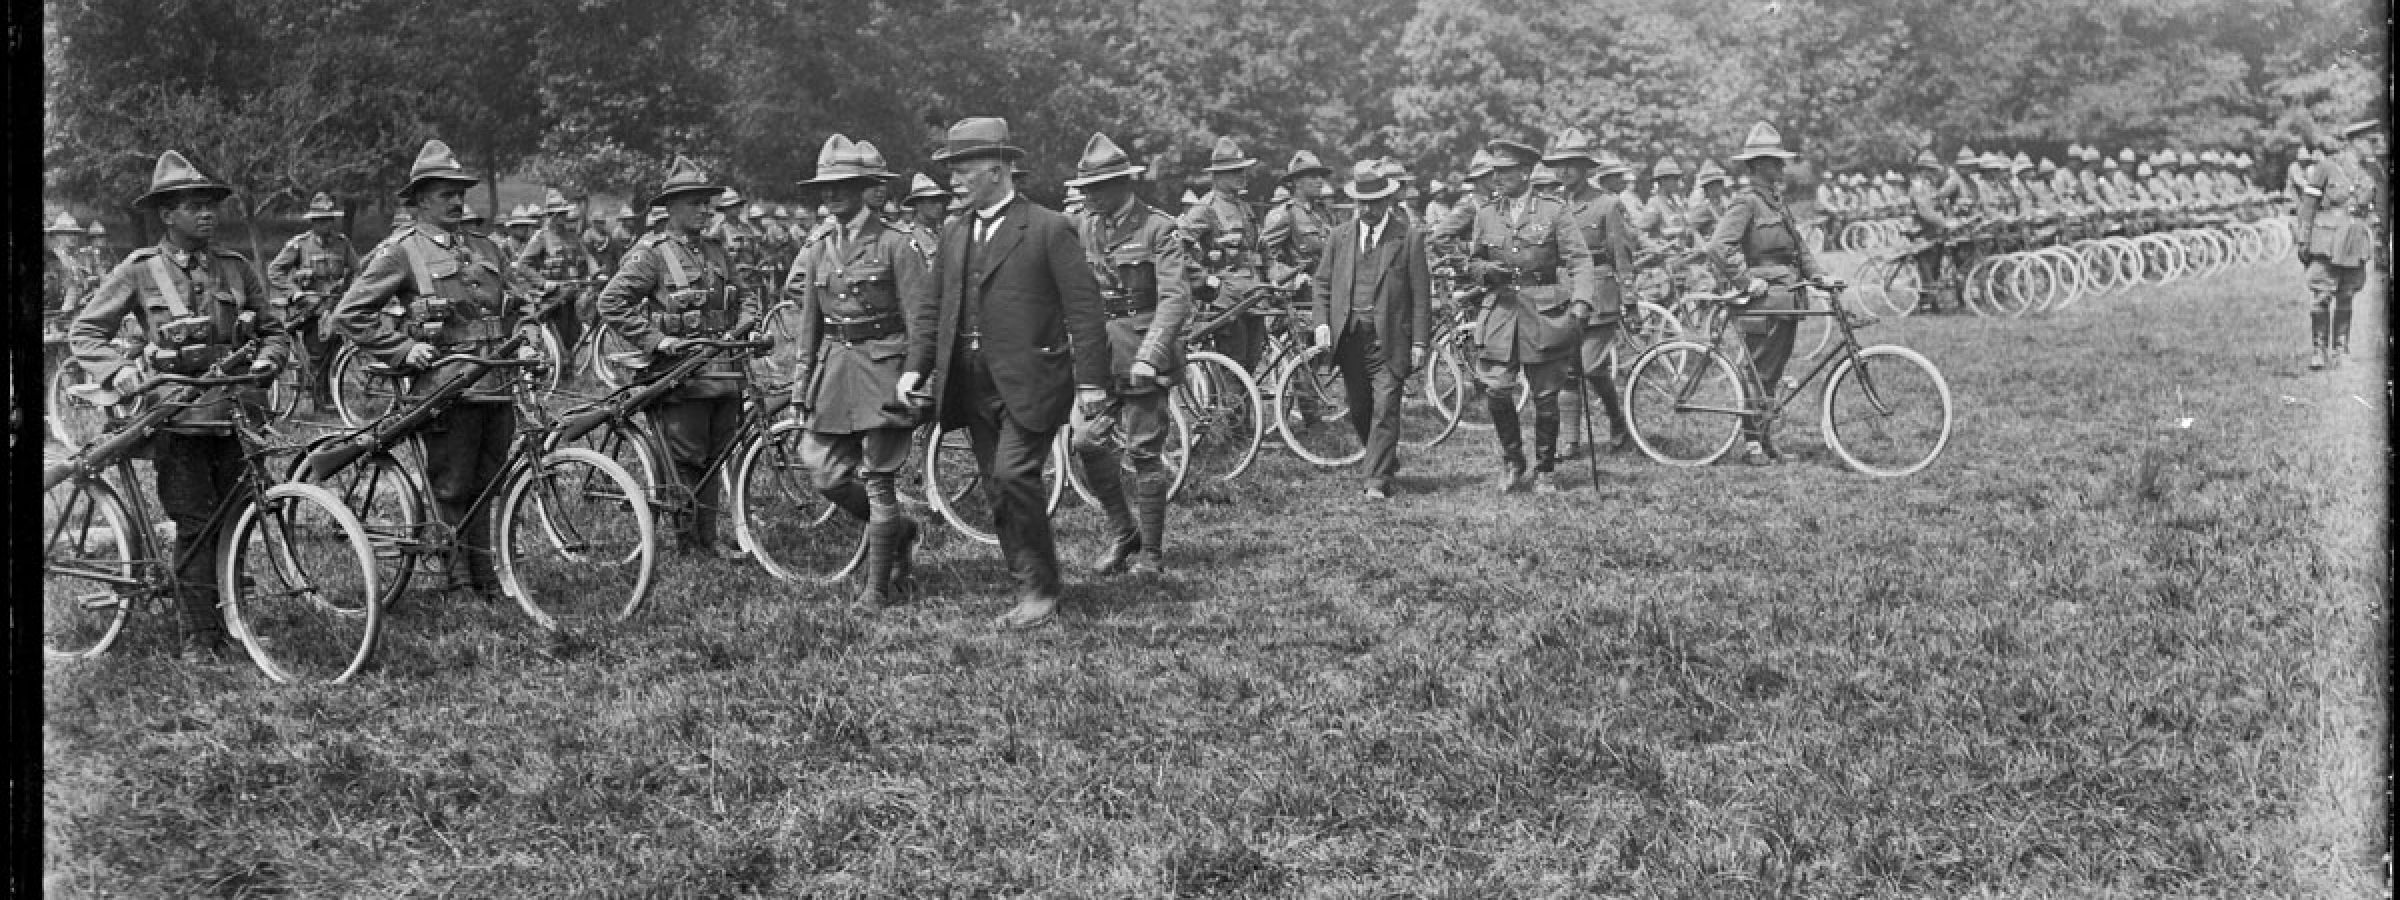 William Massey and Joseph Ward inspect the New Zealand Cyclist Battalion in France, 3 July 1917.